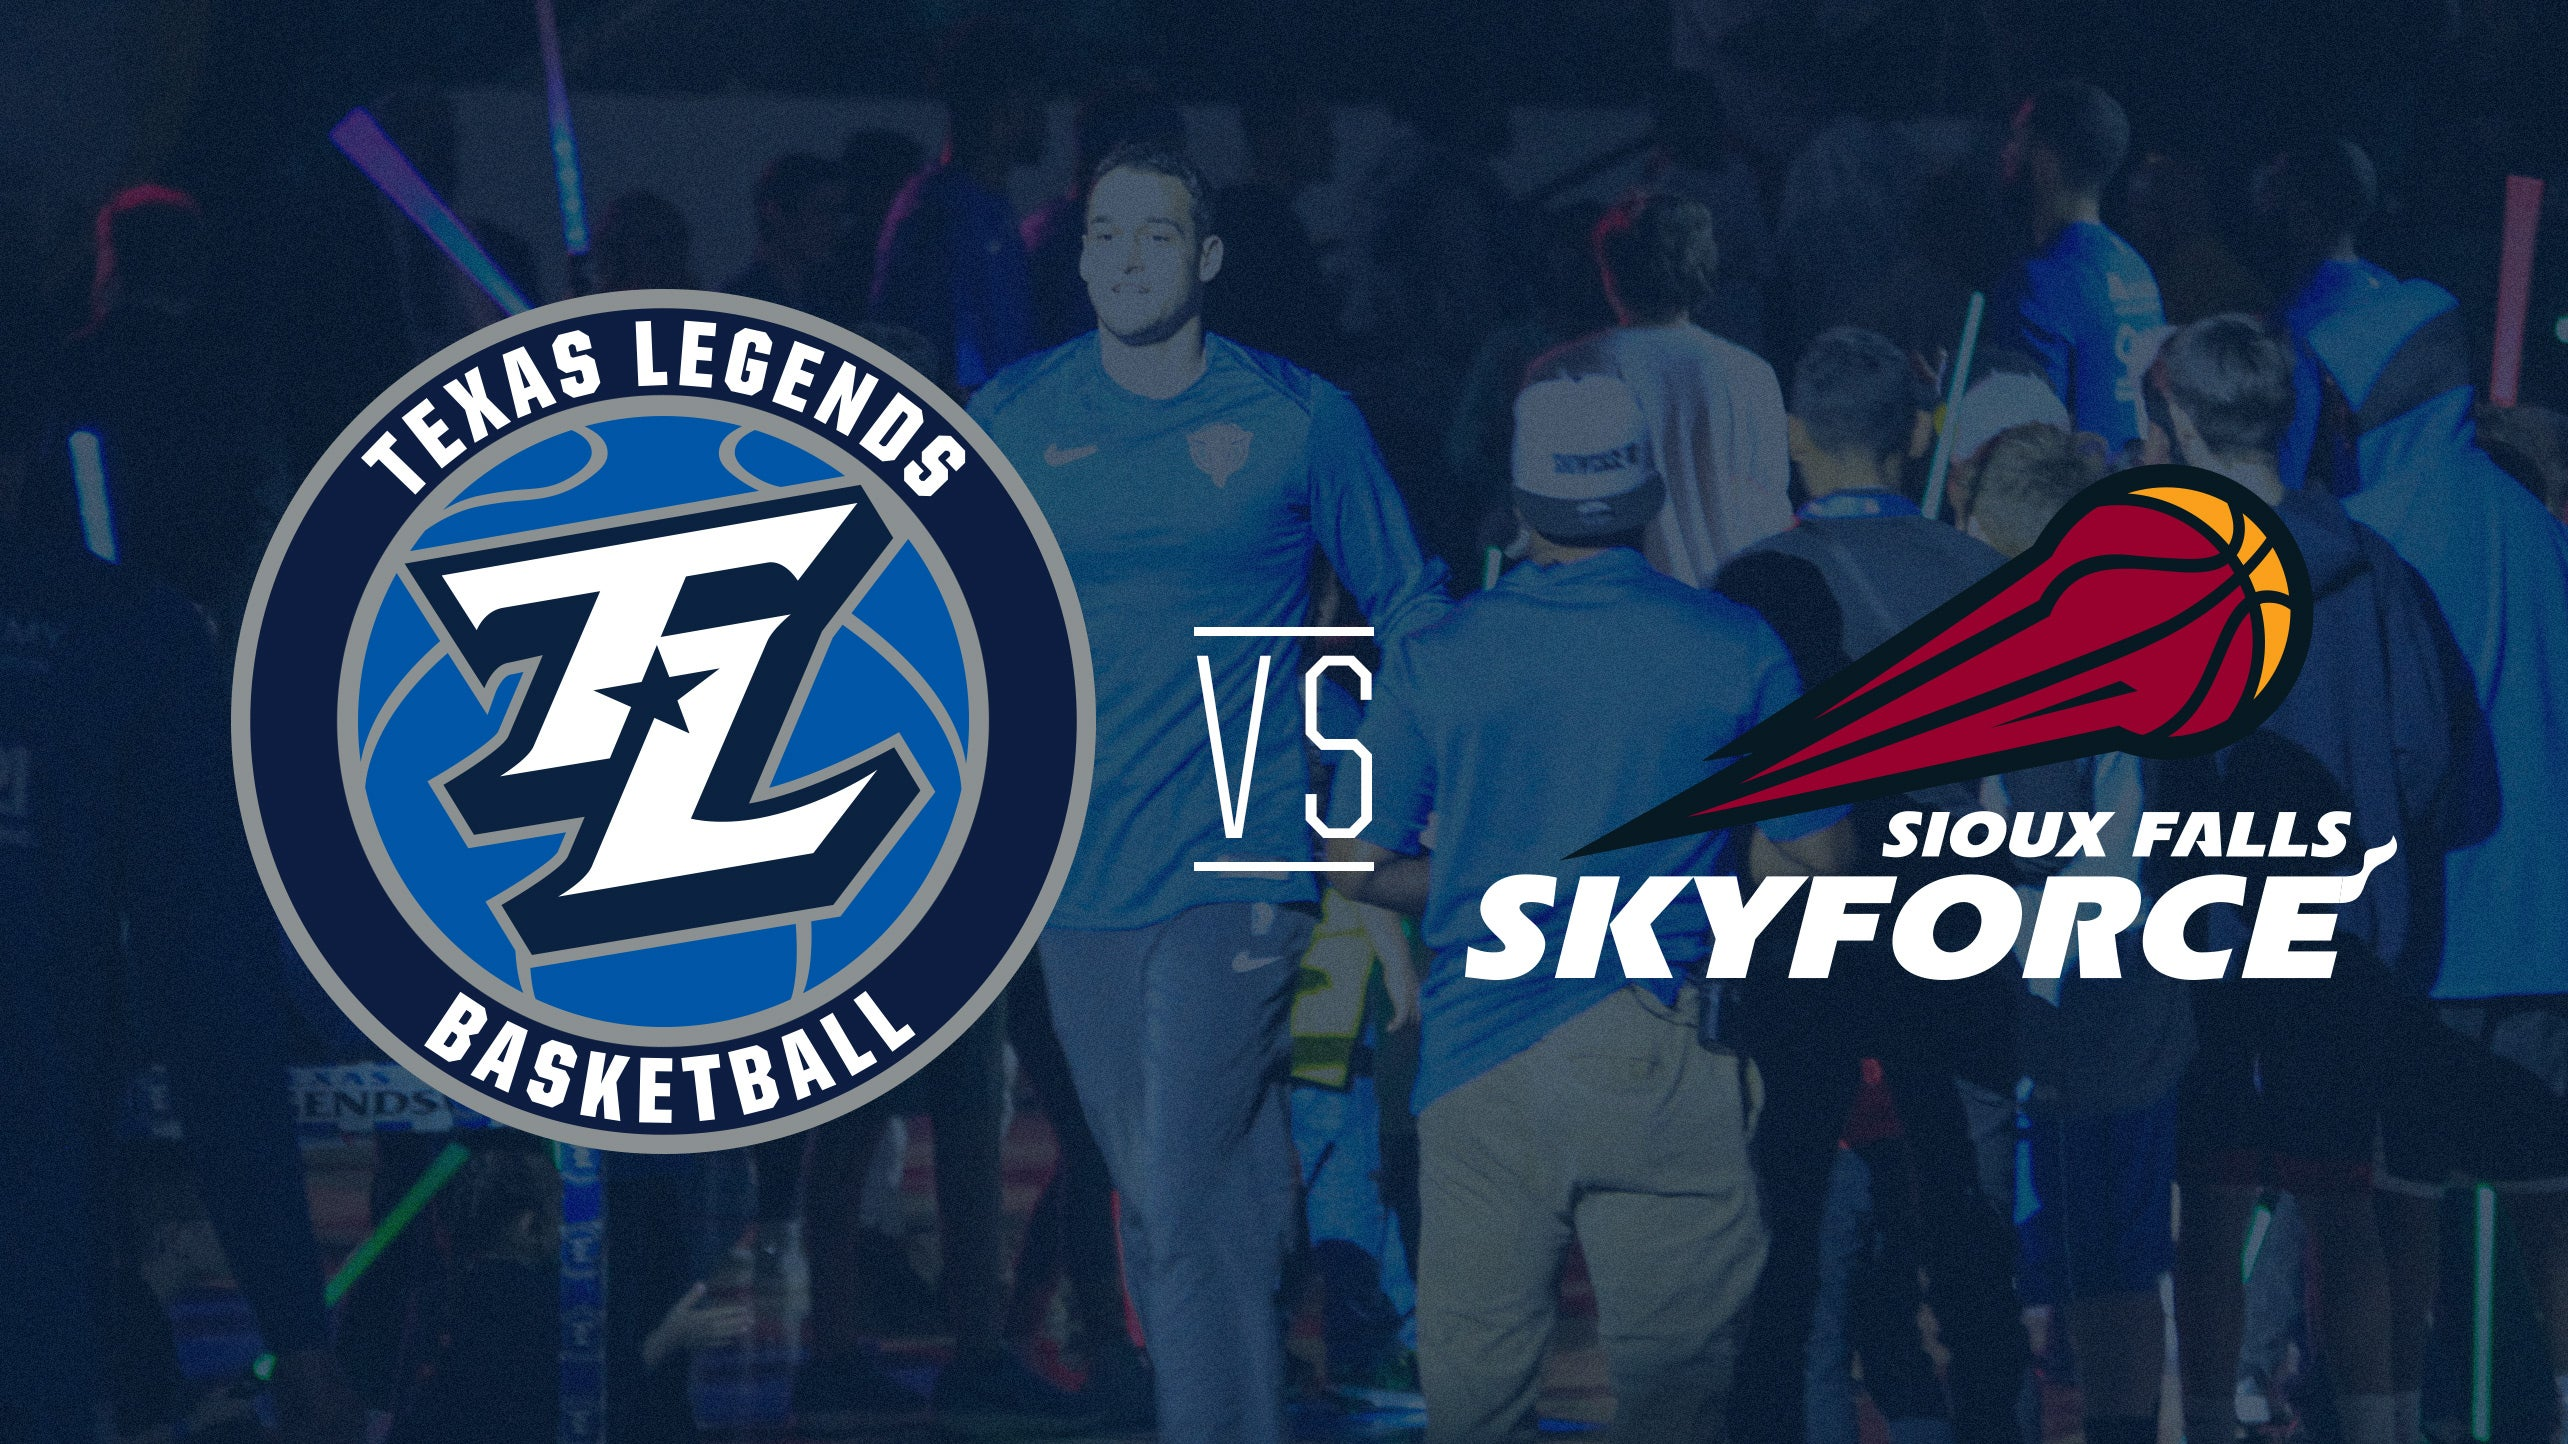 Texas Legends vs Sioux Falls Skyforce